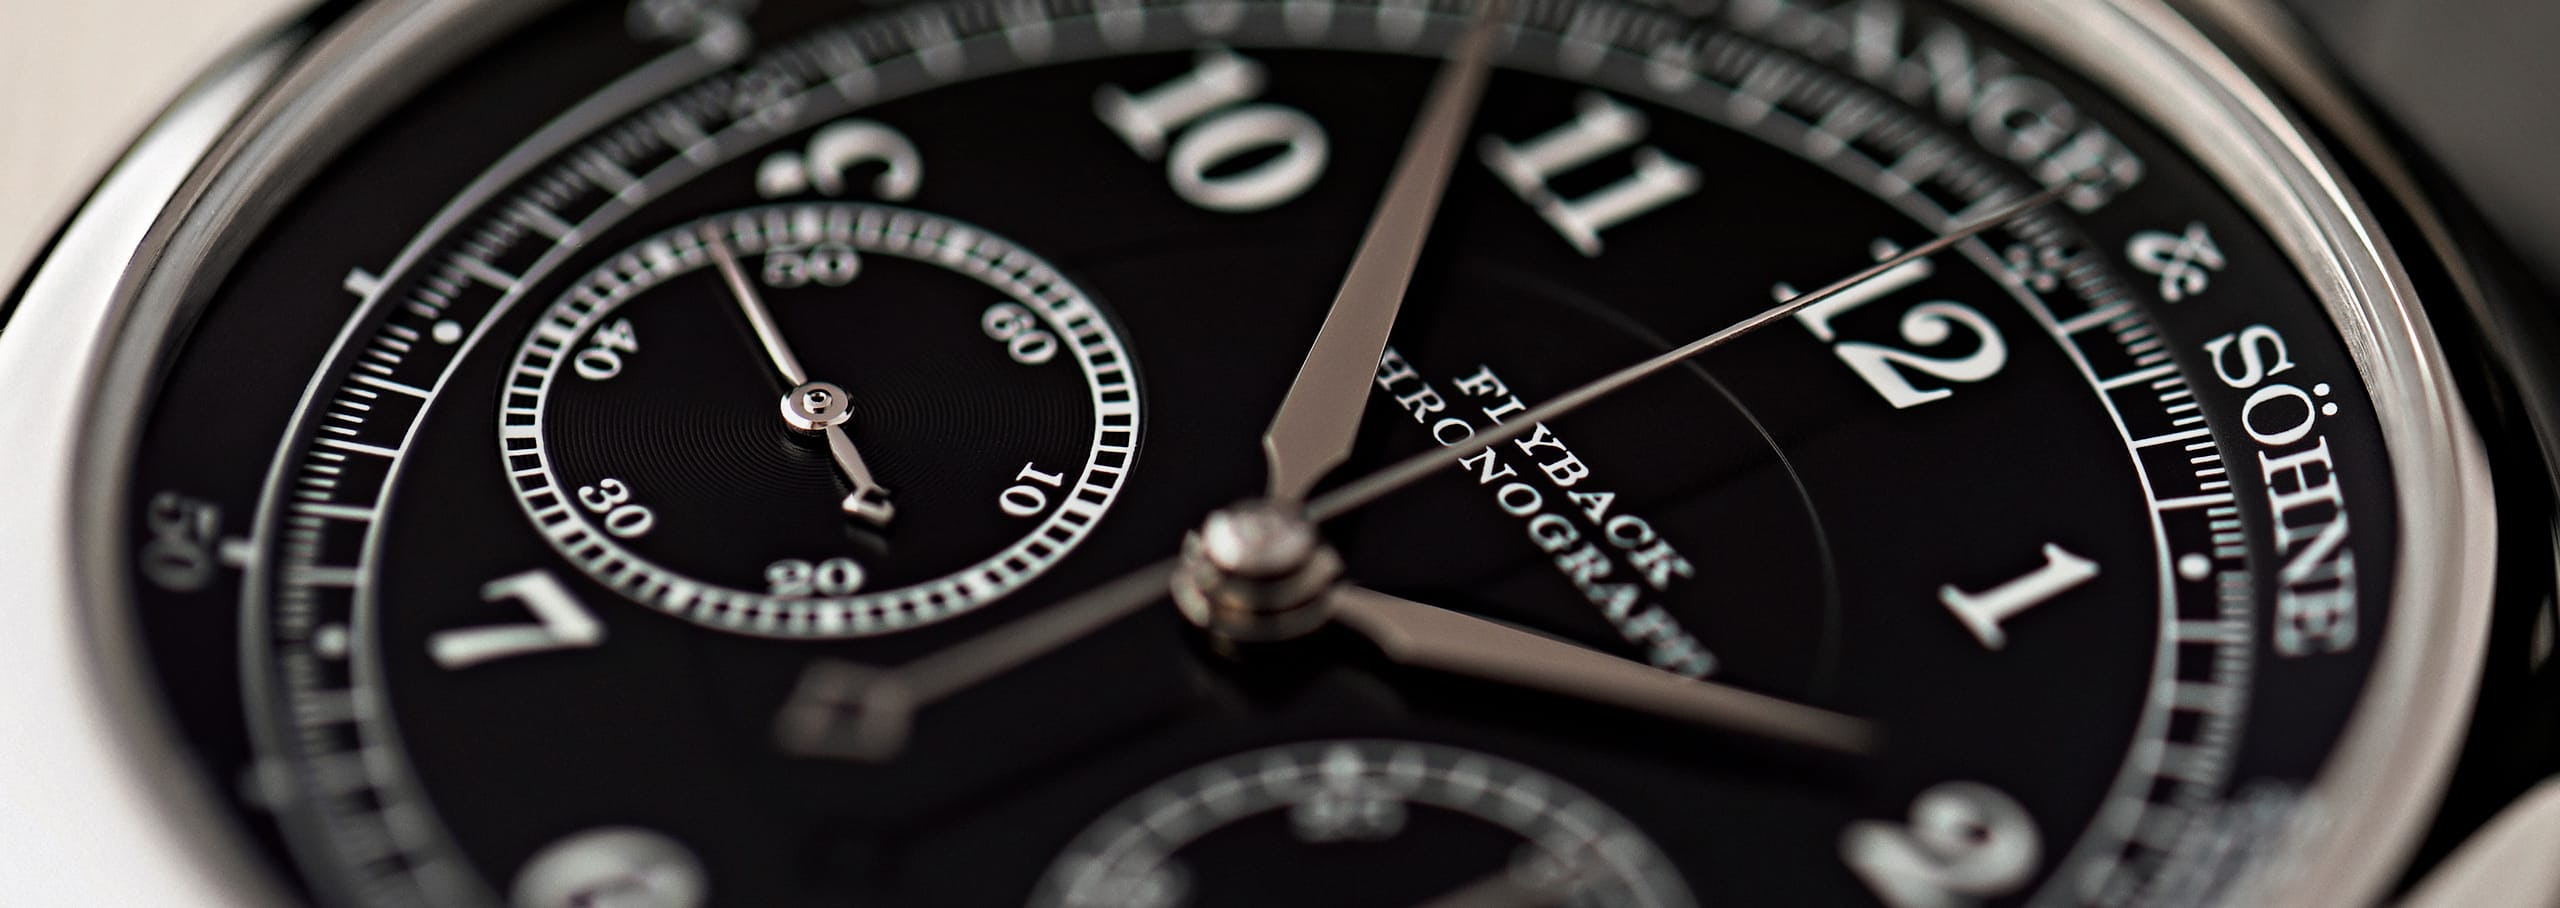 """An In-Depth Look at the A. Lange & Söhne 1815 Chronograph """"Darth"""""""